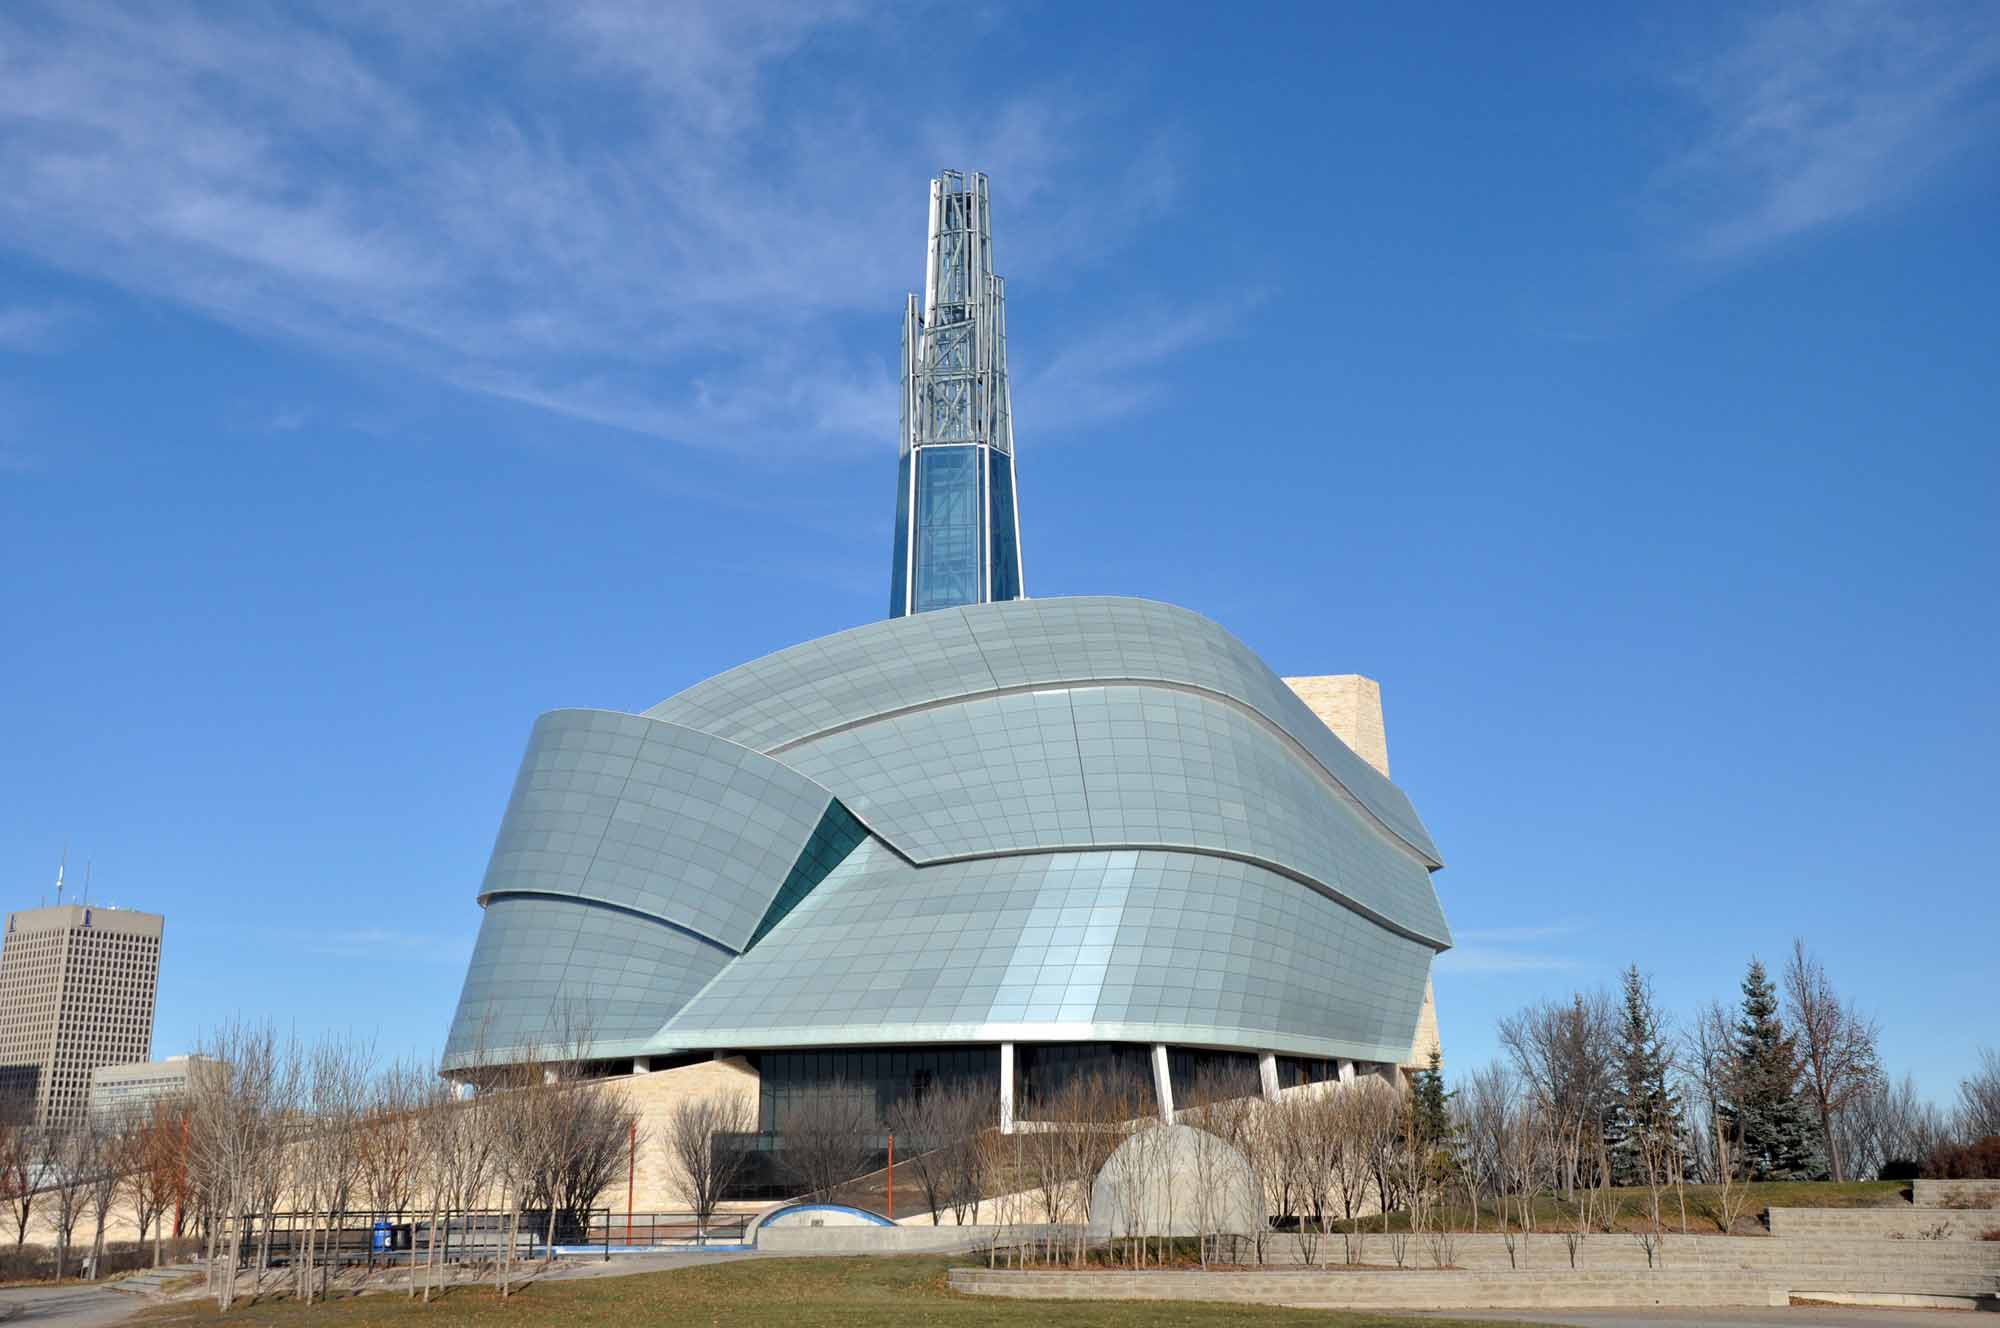 The Canadian Museum for Human Rights in Winnipeg, Manitoba.